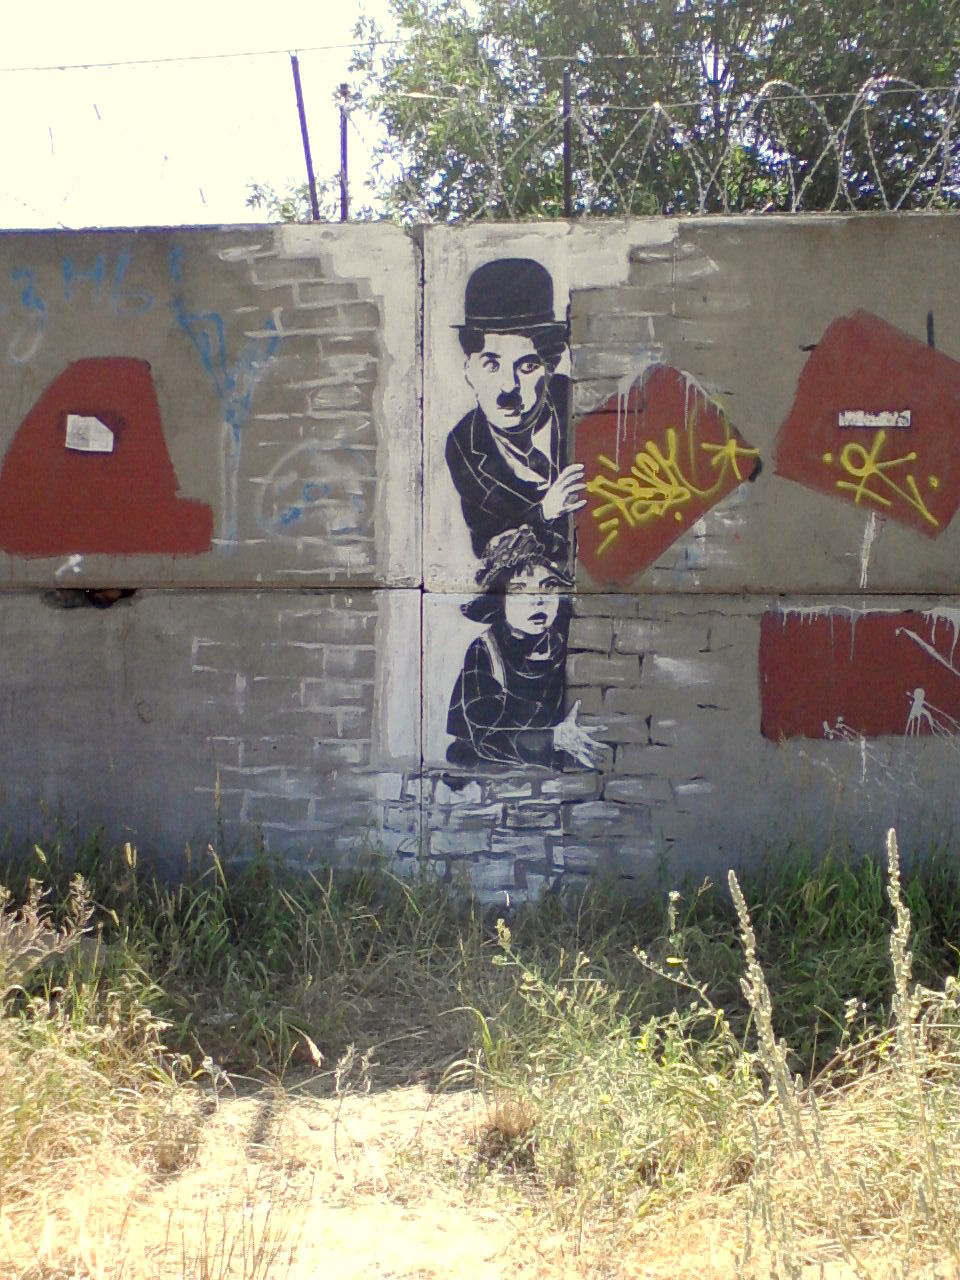 Unknown artist. The Kid and the Tramp